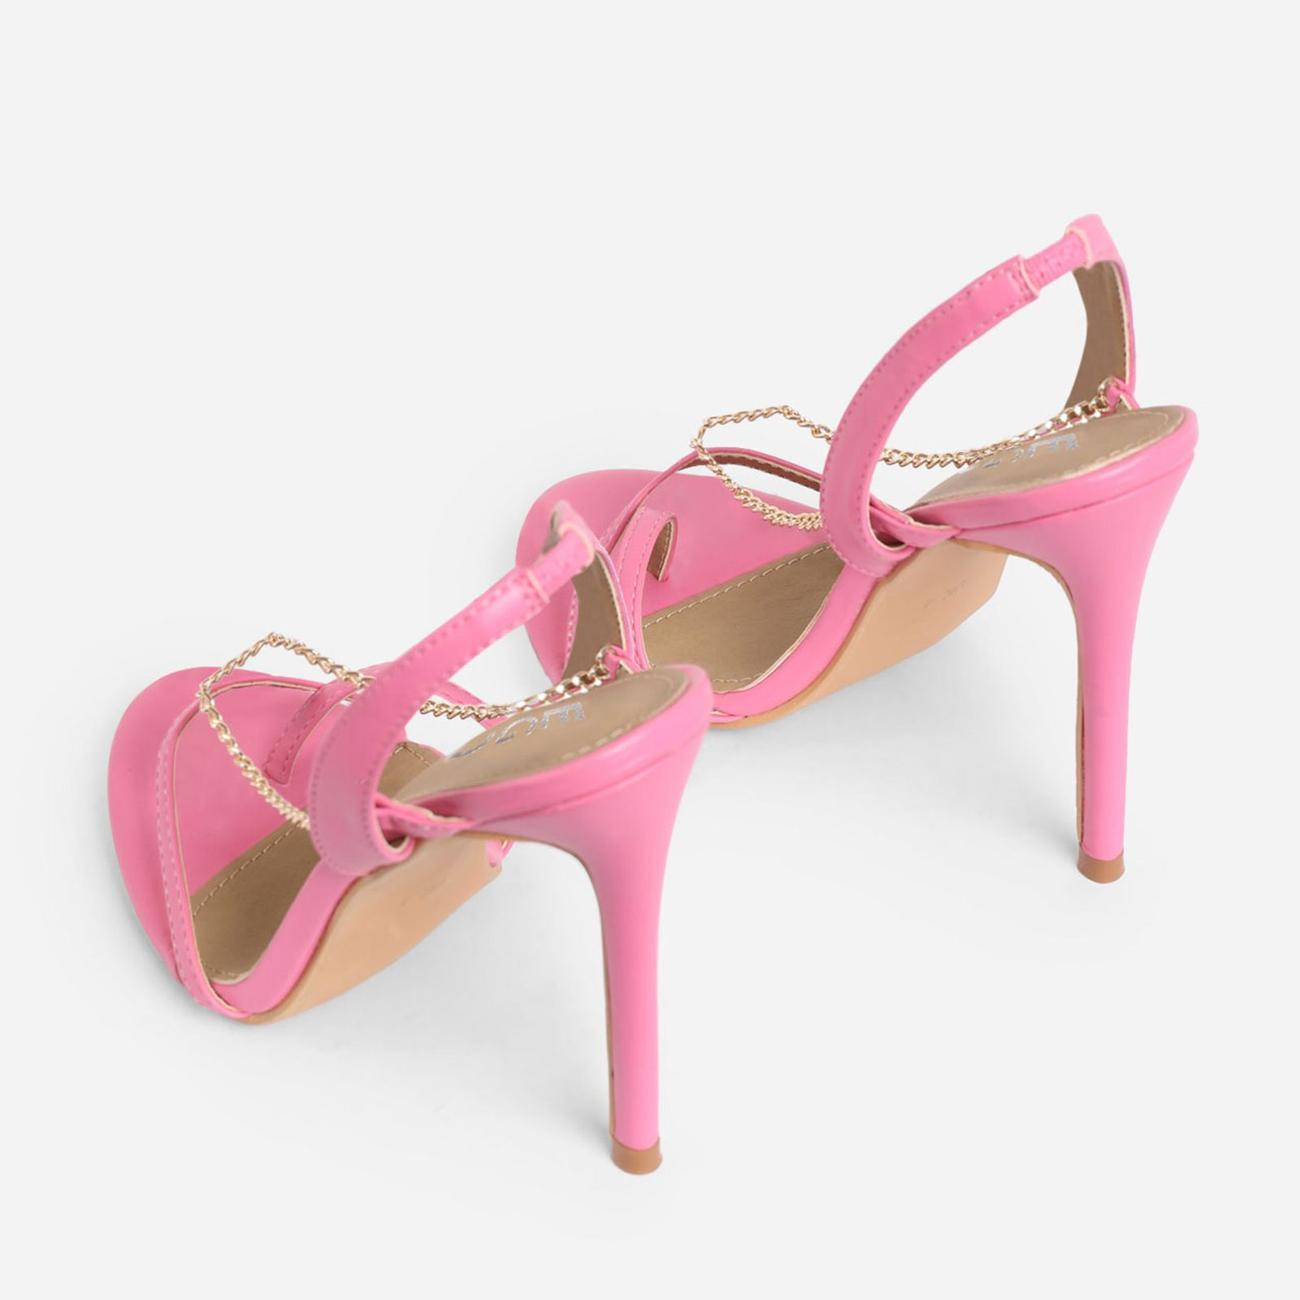 Peachy Chain Detail Sling Back Heel In Pink Faux Leather Image 3